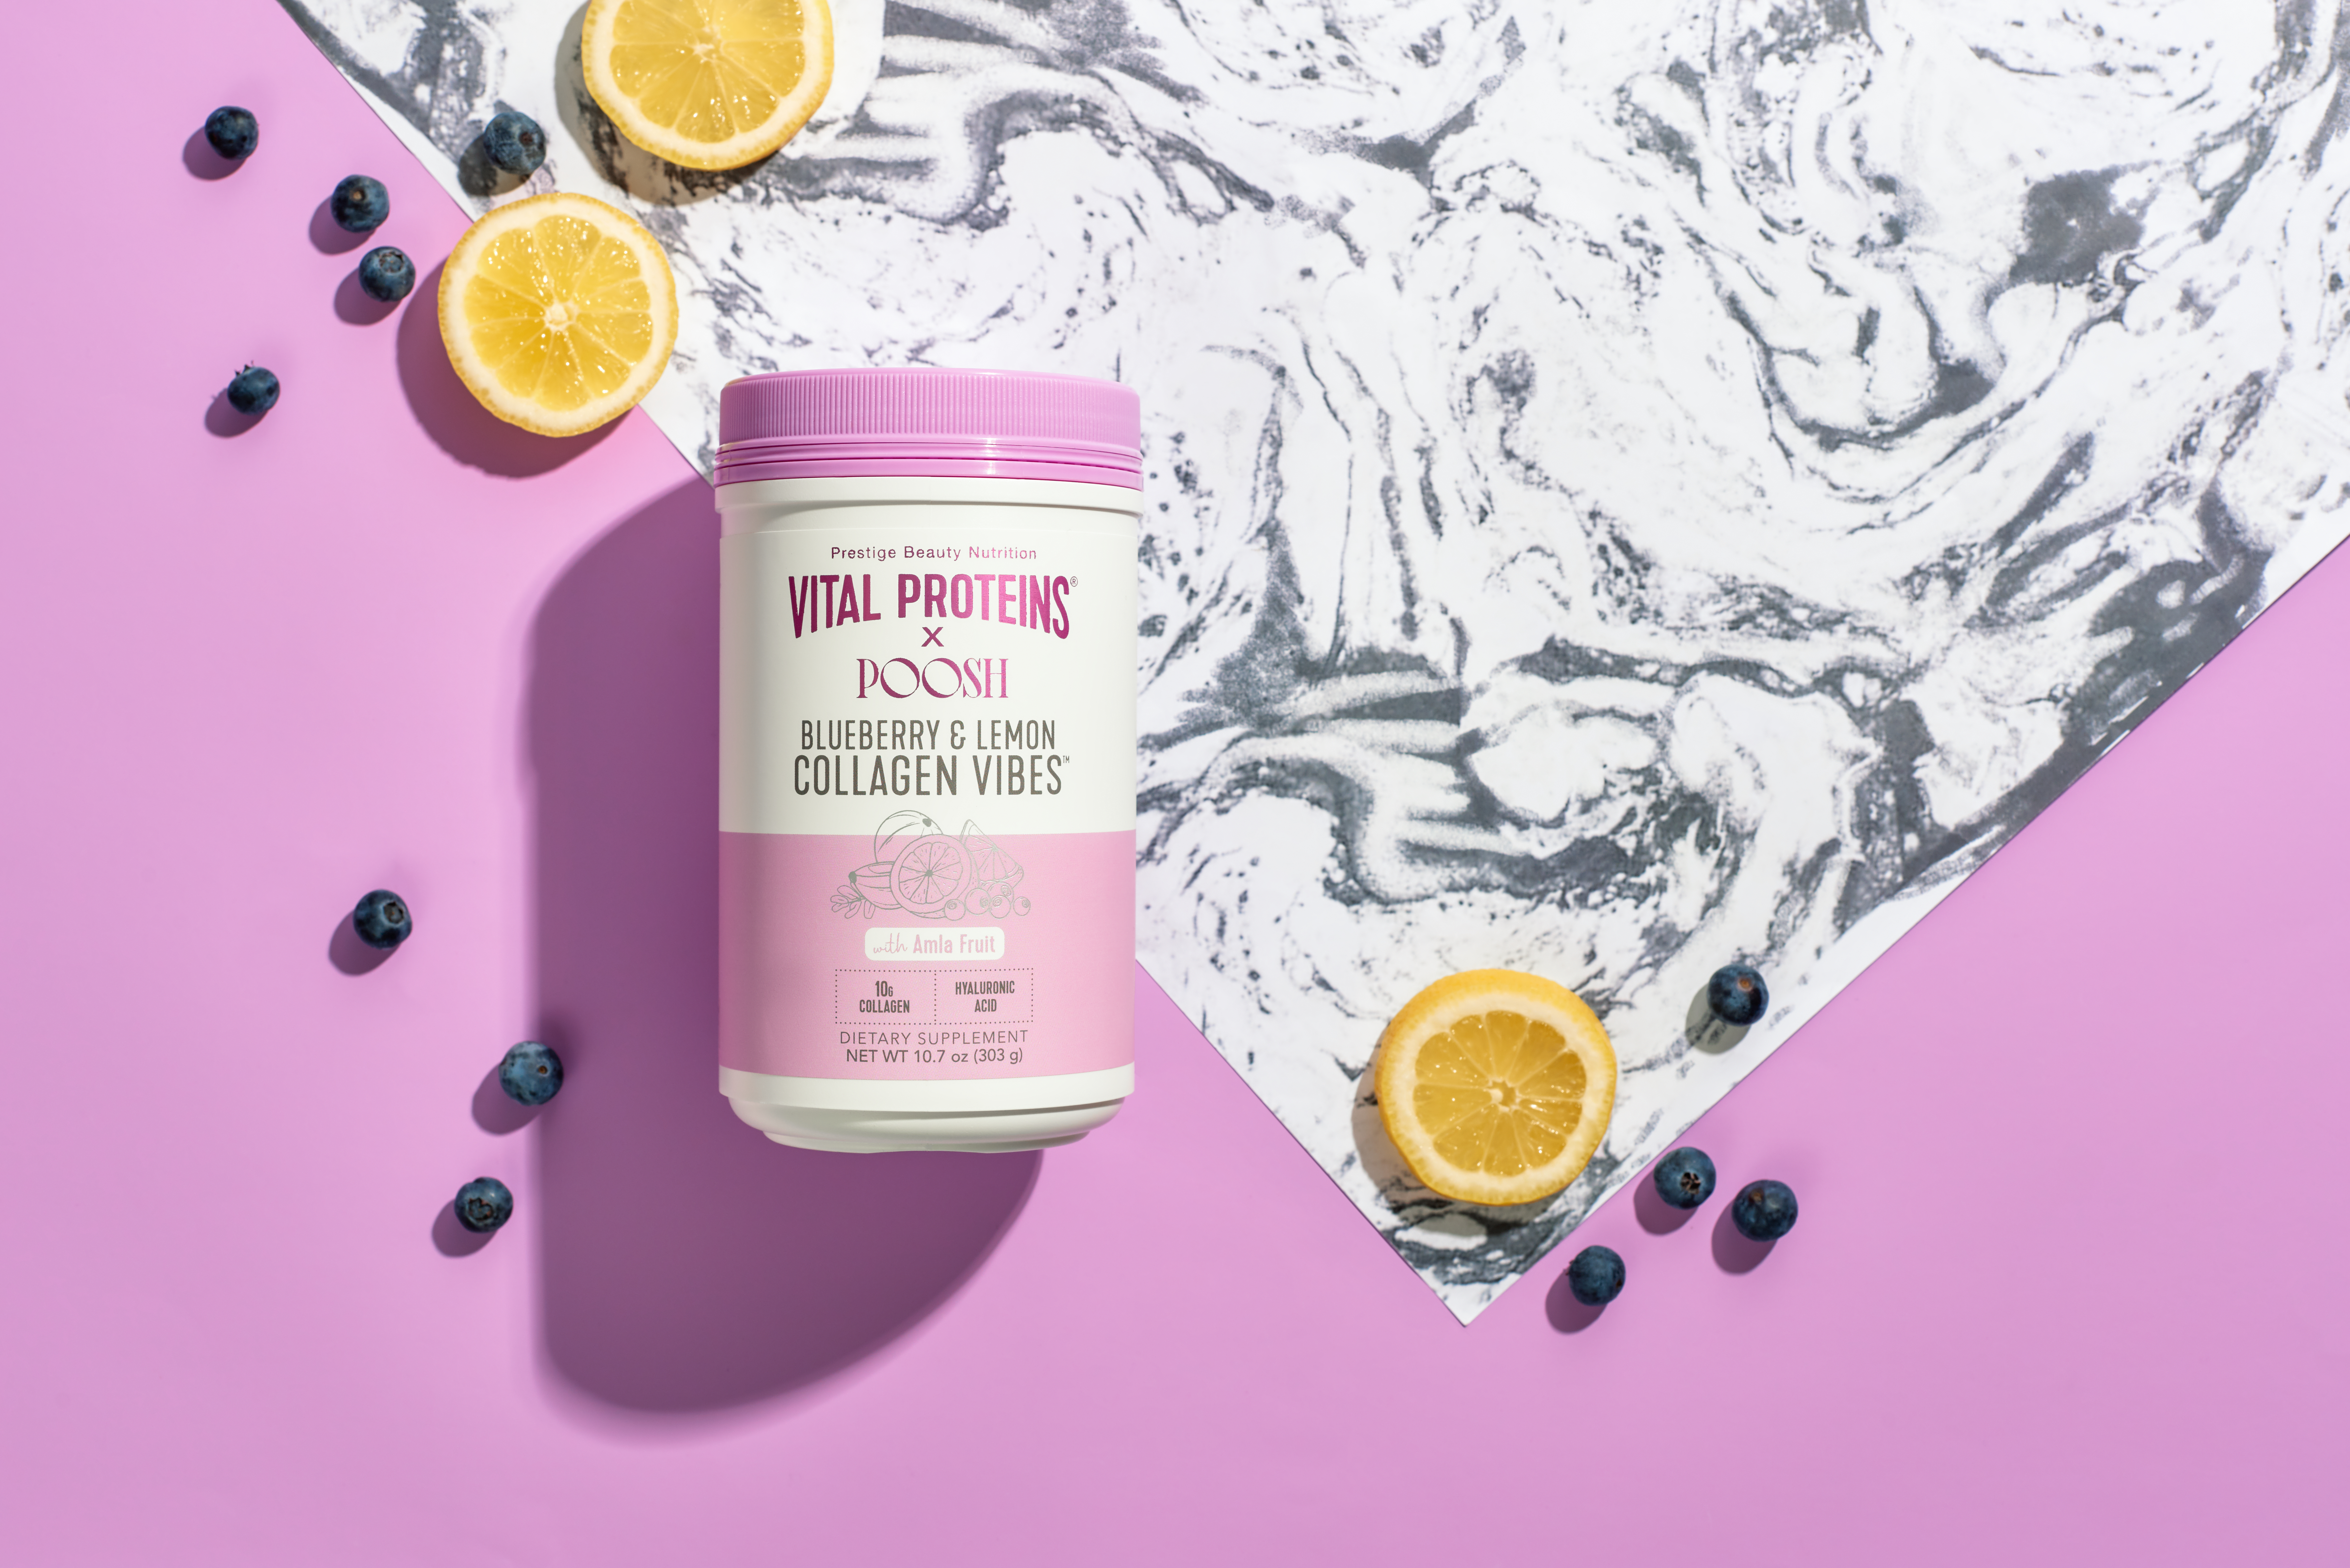 Poosh partners with Vital Proteins on its e-commerce debut.